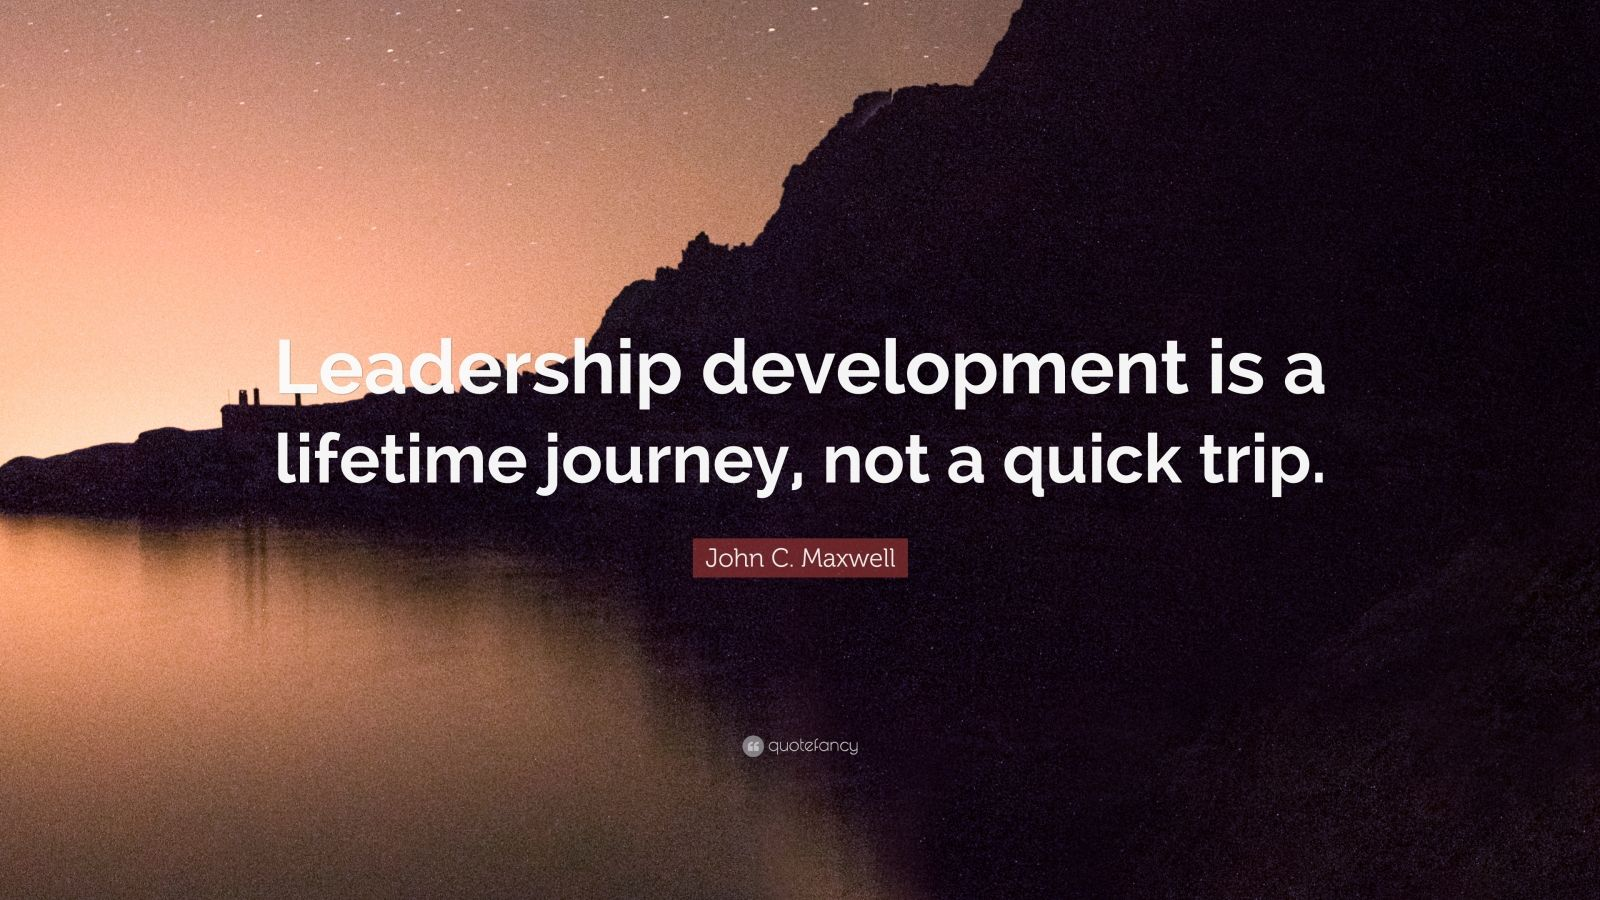 Mission Trip Quote Wallpaper John C Maxwell Quote Leadership Development Is A